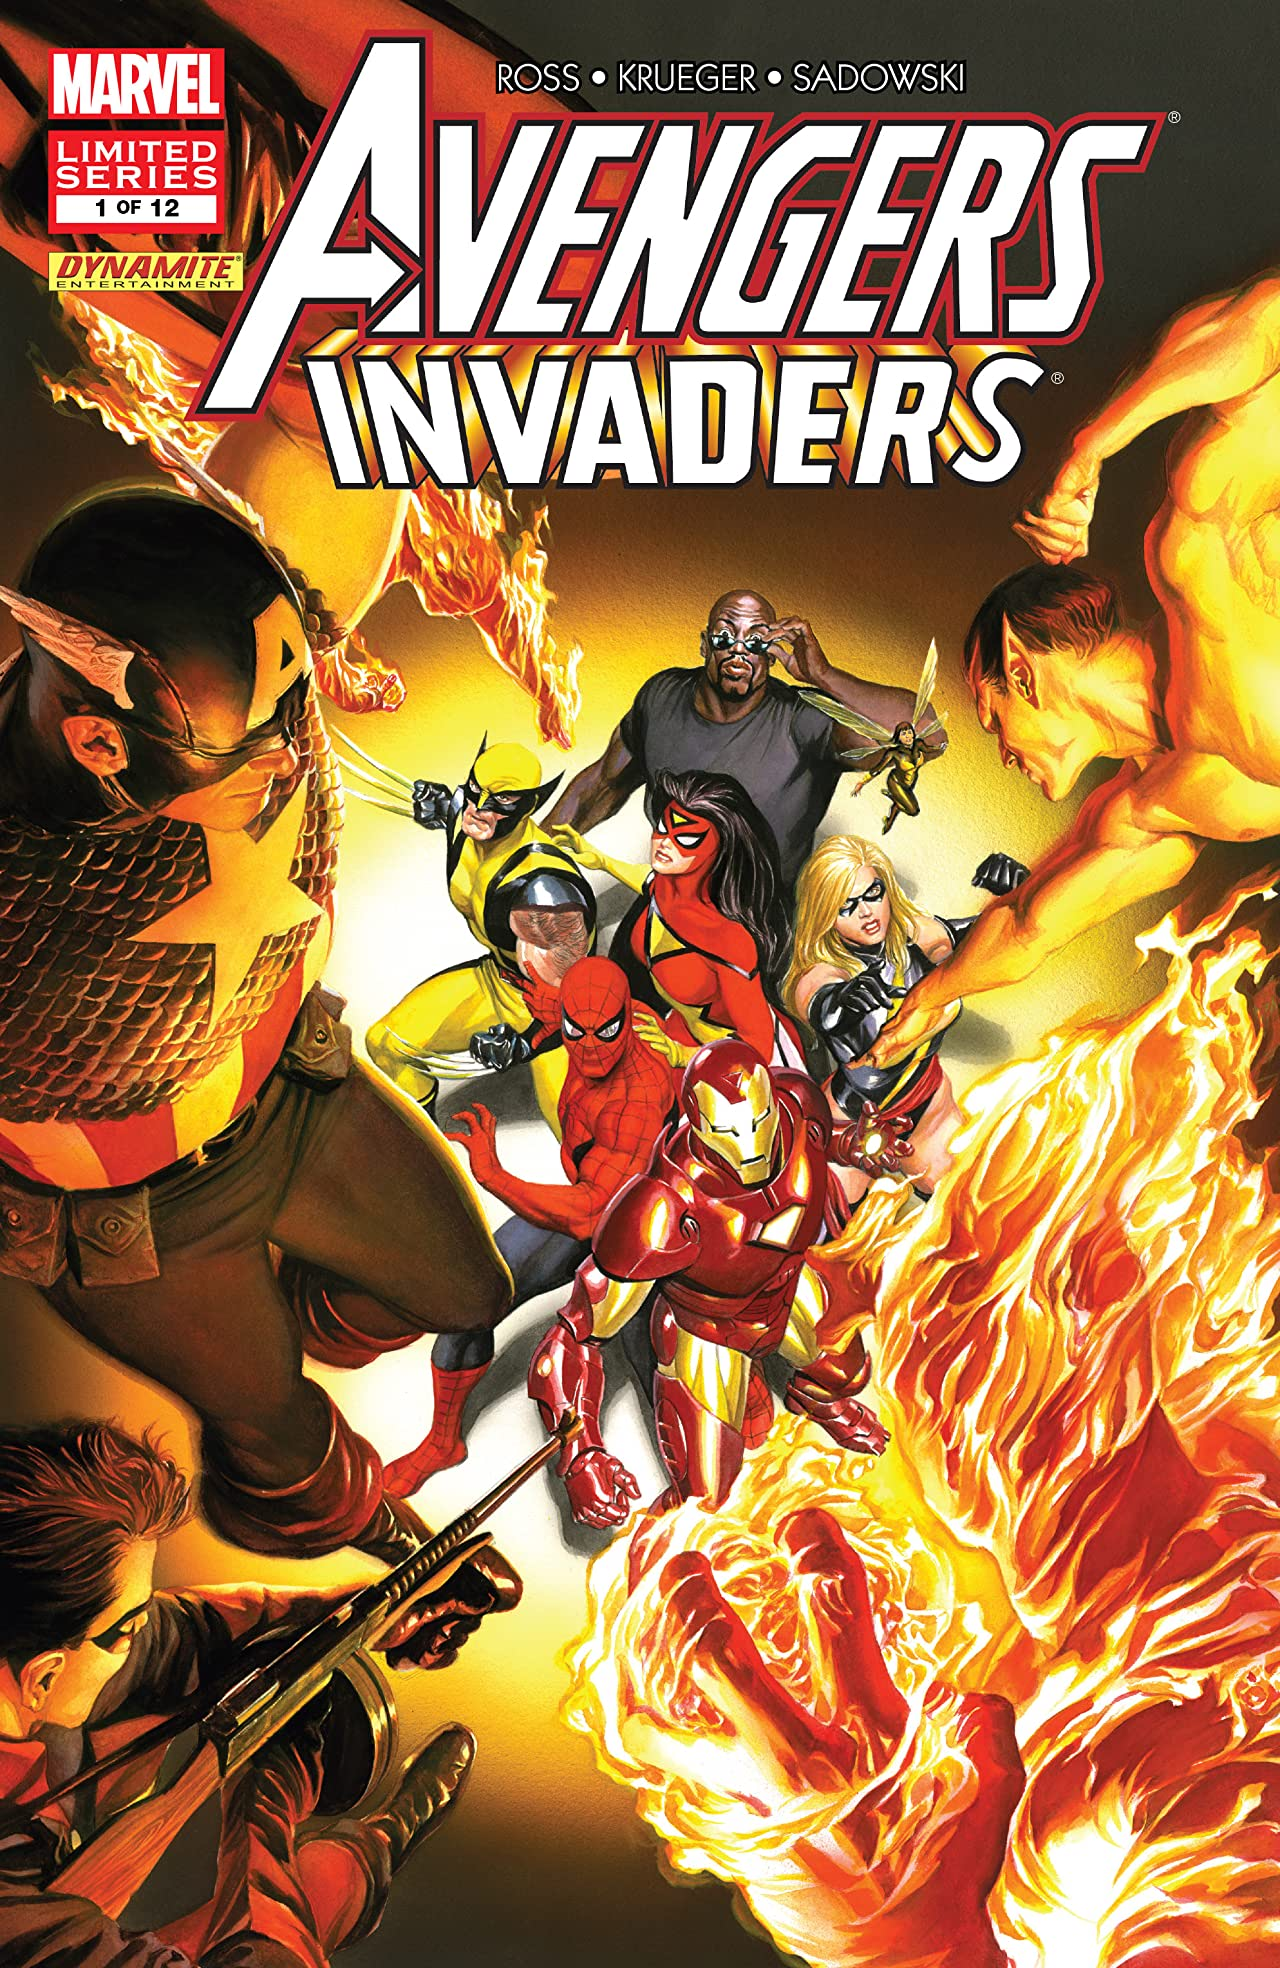 Avengers/Invaders (2008-2009) #1 (of 12)